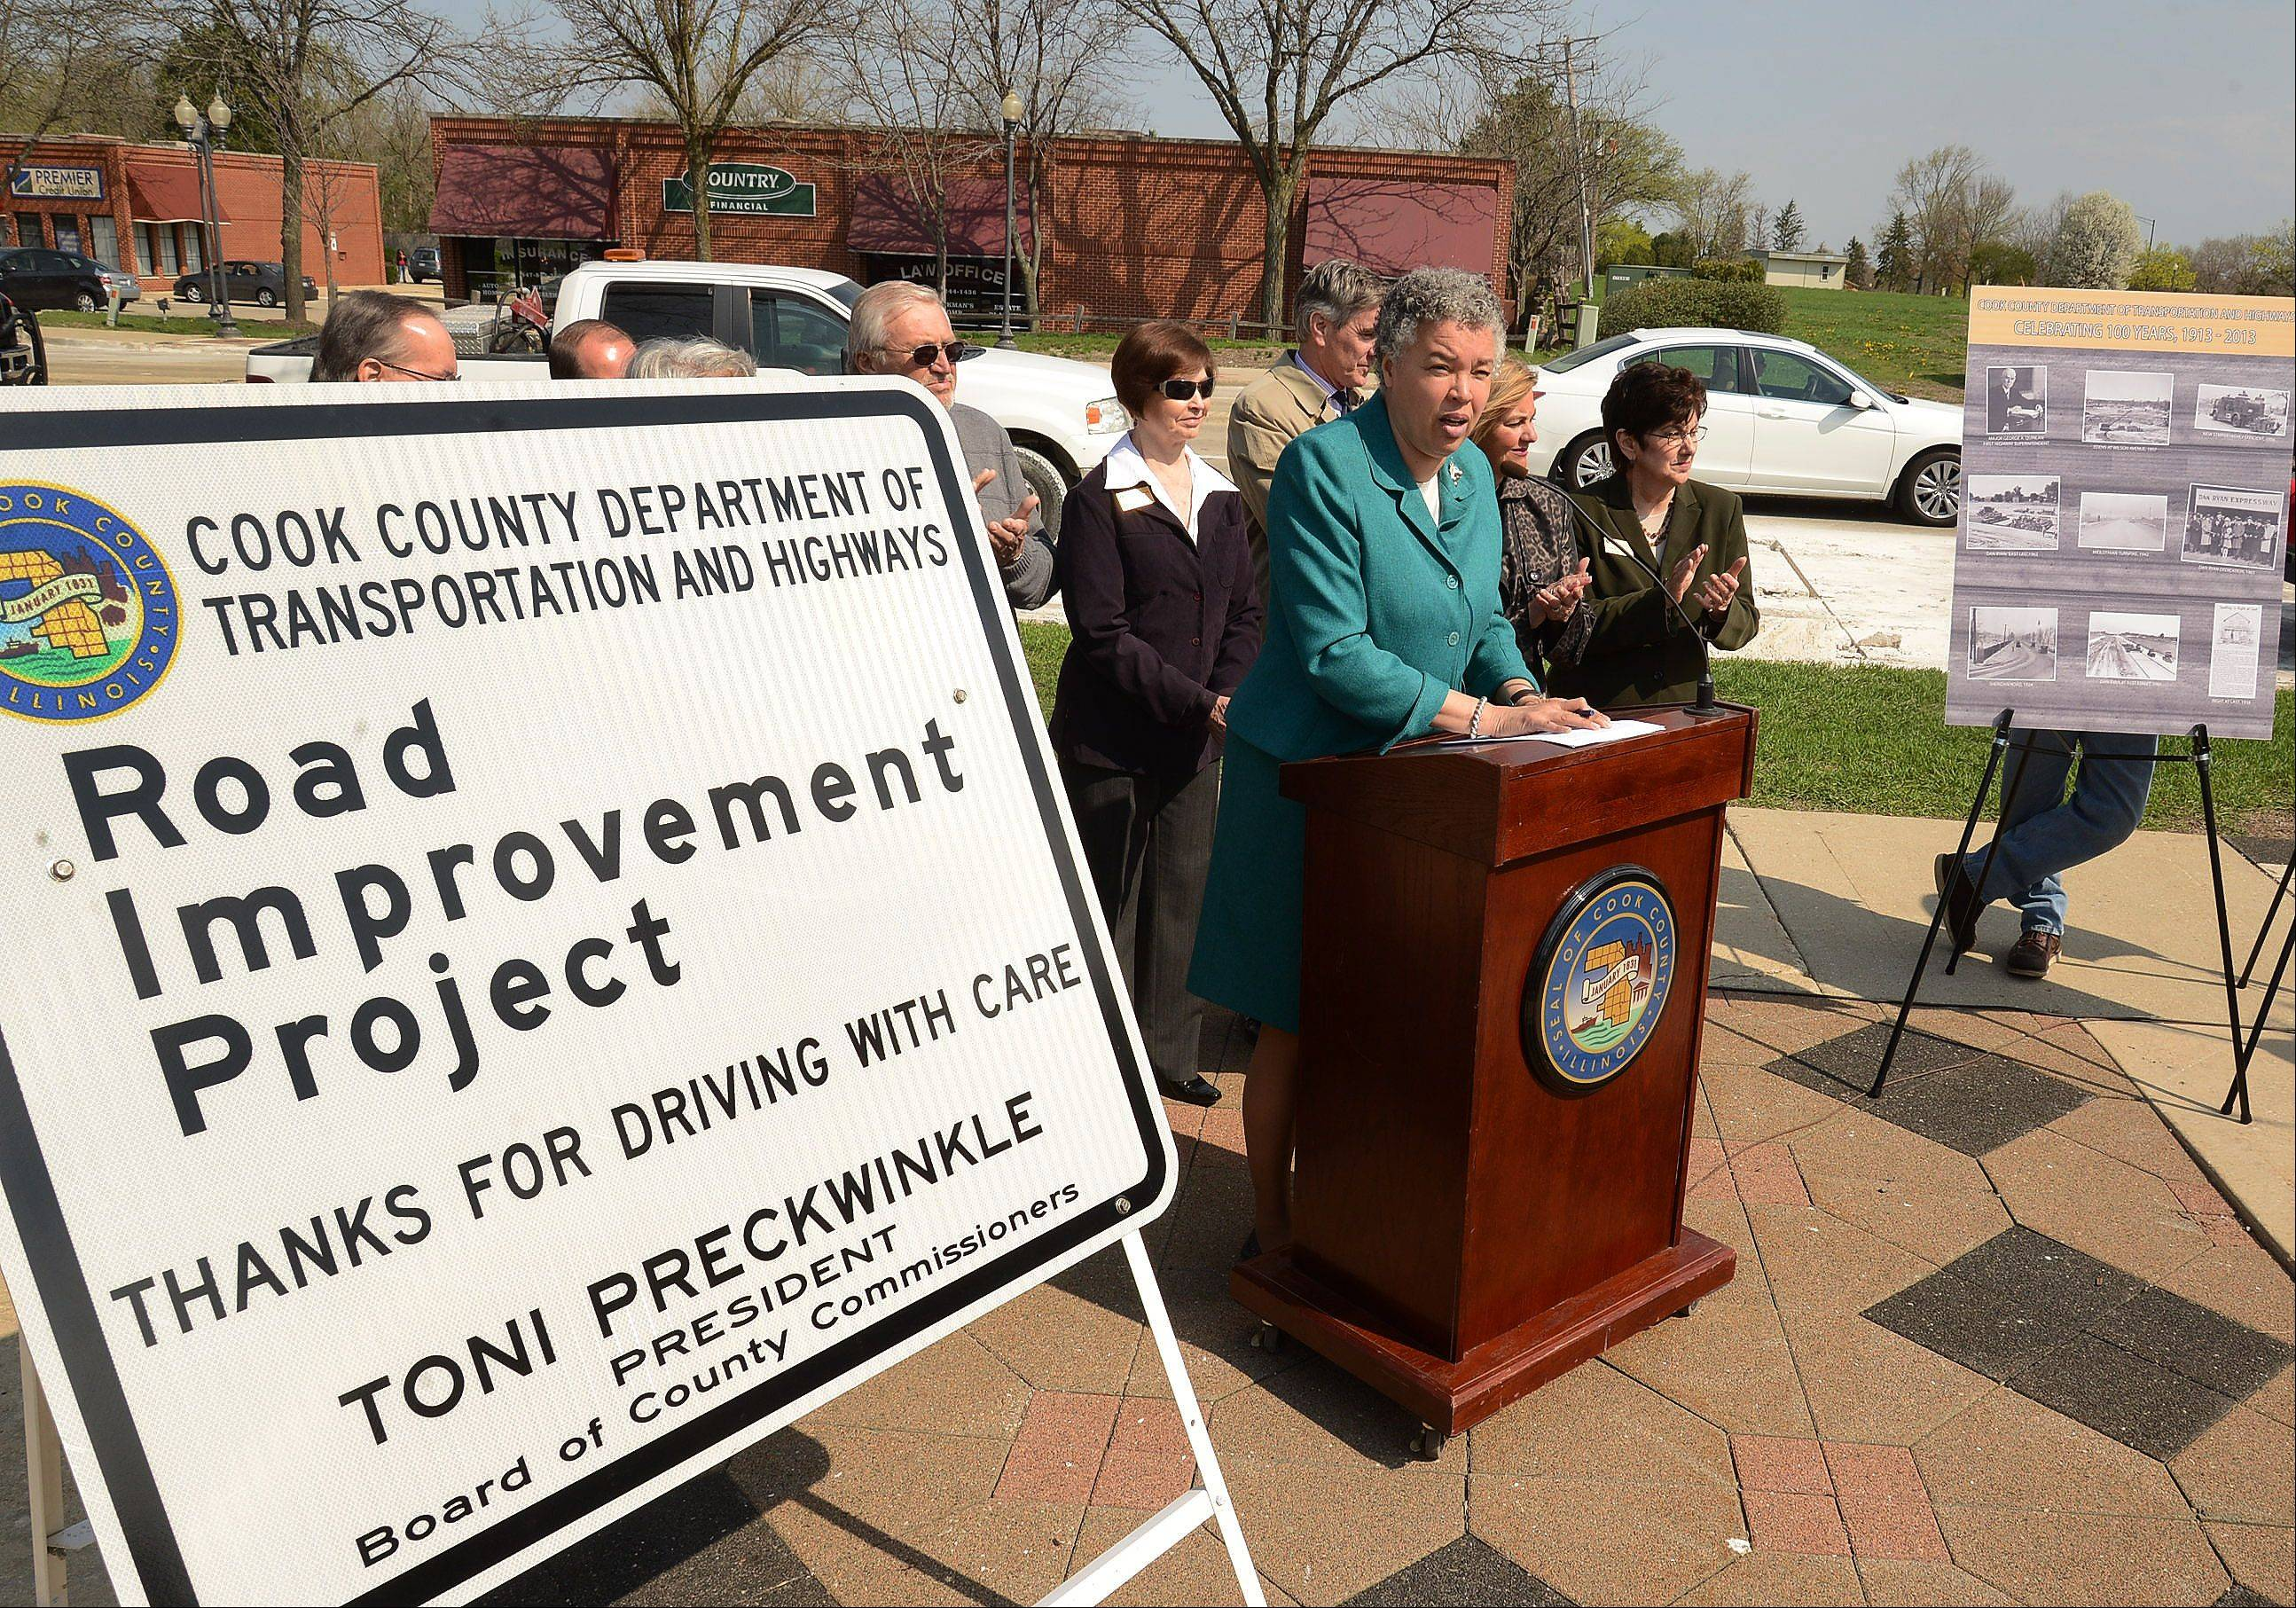 Cook County Board President Toni Preckwinkle joins Schaumburg officials to discuss joint road projects at the corner of Roselle and Schaumburg Roads in Schaumburg. The intersection will get new turn lanes this year as part of a cooperative effort between the village and county.